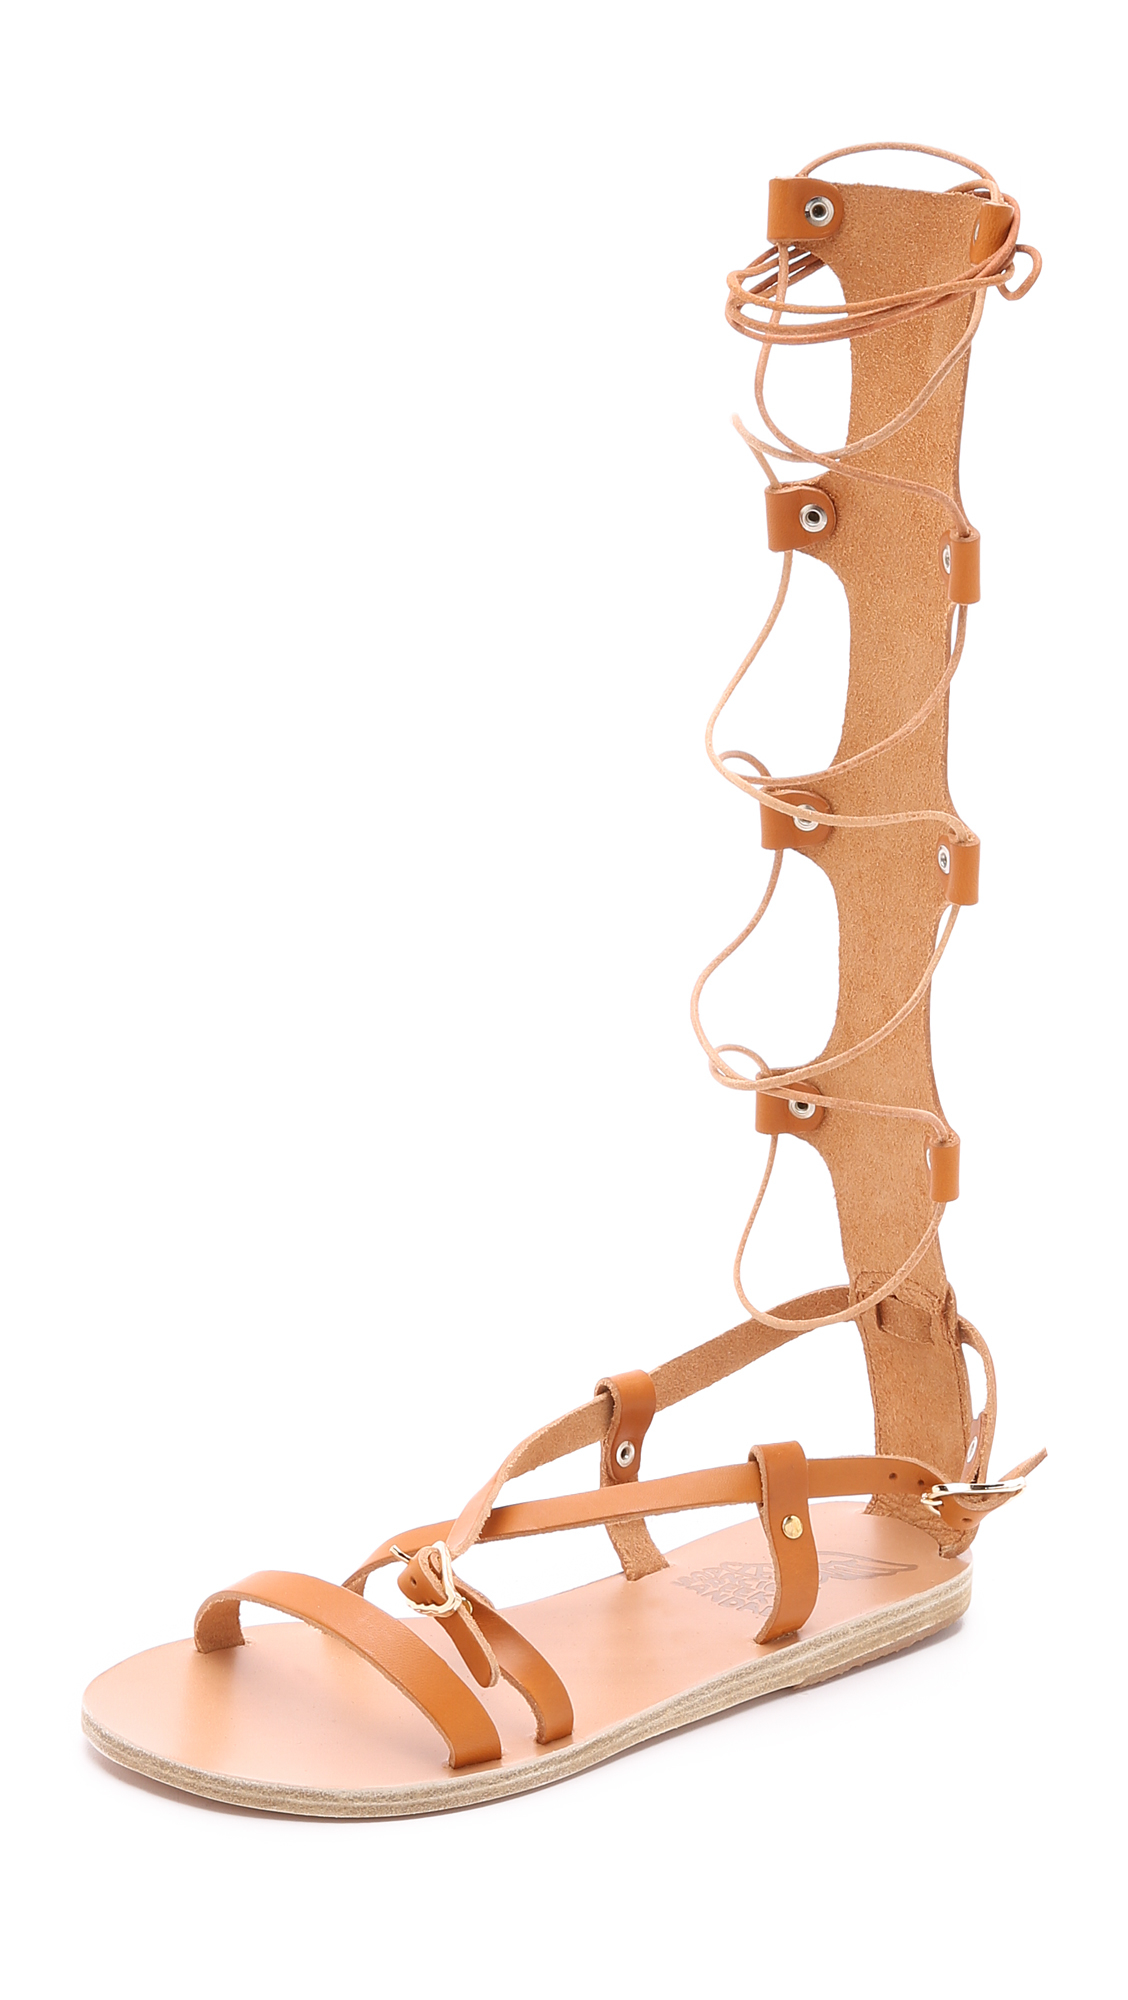 Ancient Greek Sandals Sofia High leather gladiator sandals Exclusive Online From China Discount Looking For LYv7a